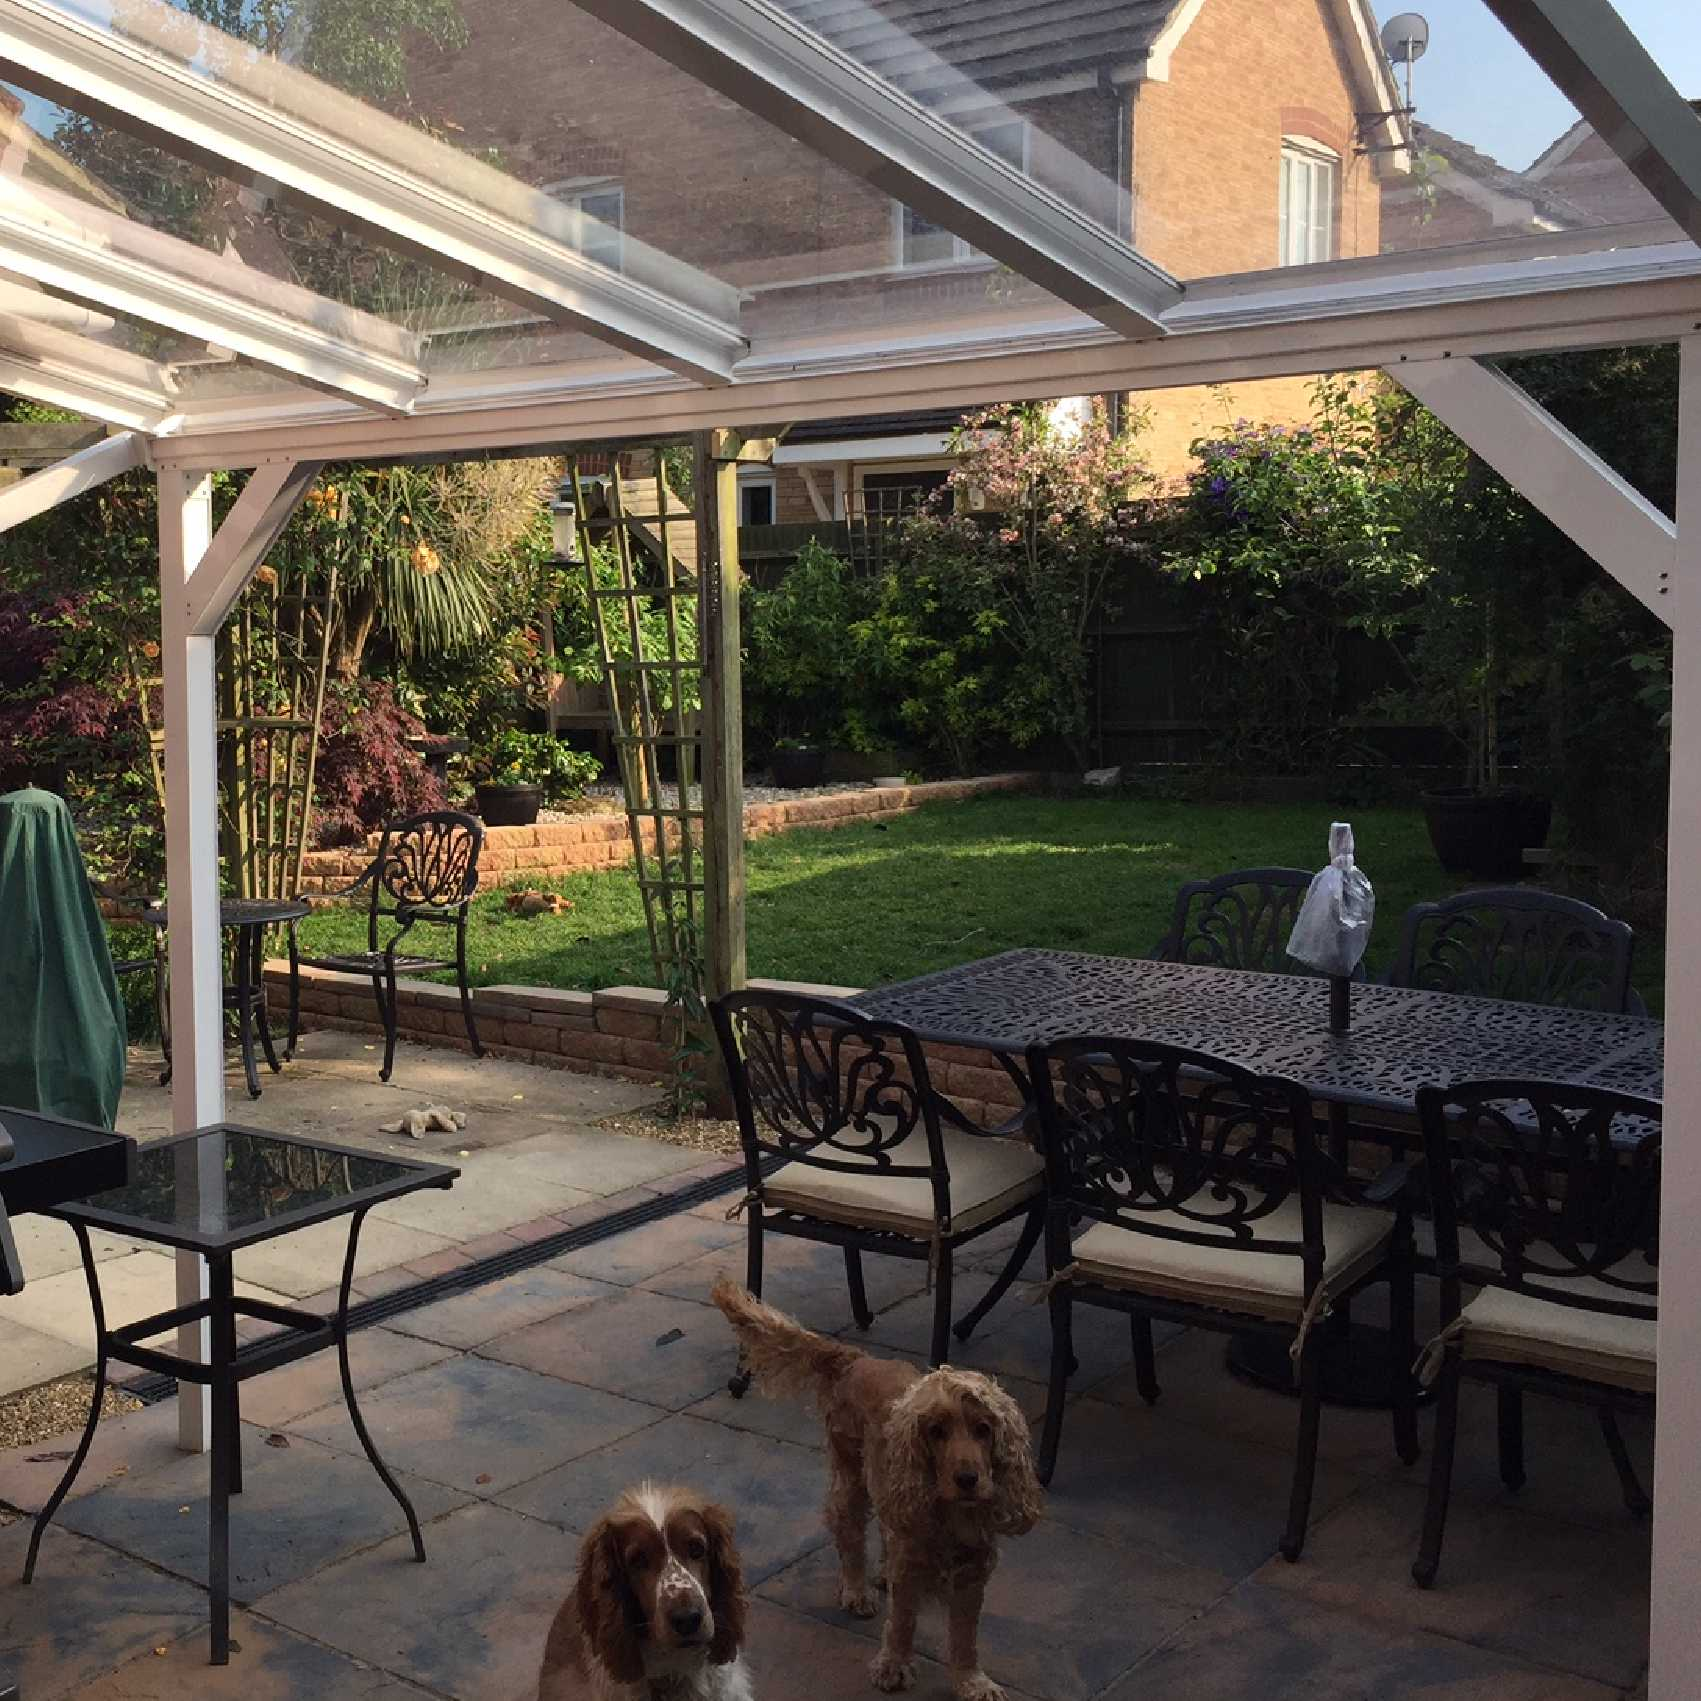 Affordable Omega Smart White Lean-To Canopy UNGLAZED for 6mm Glazing - 4.2m (W) x 1.5m (P), (3) Supporting Posts